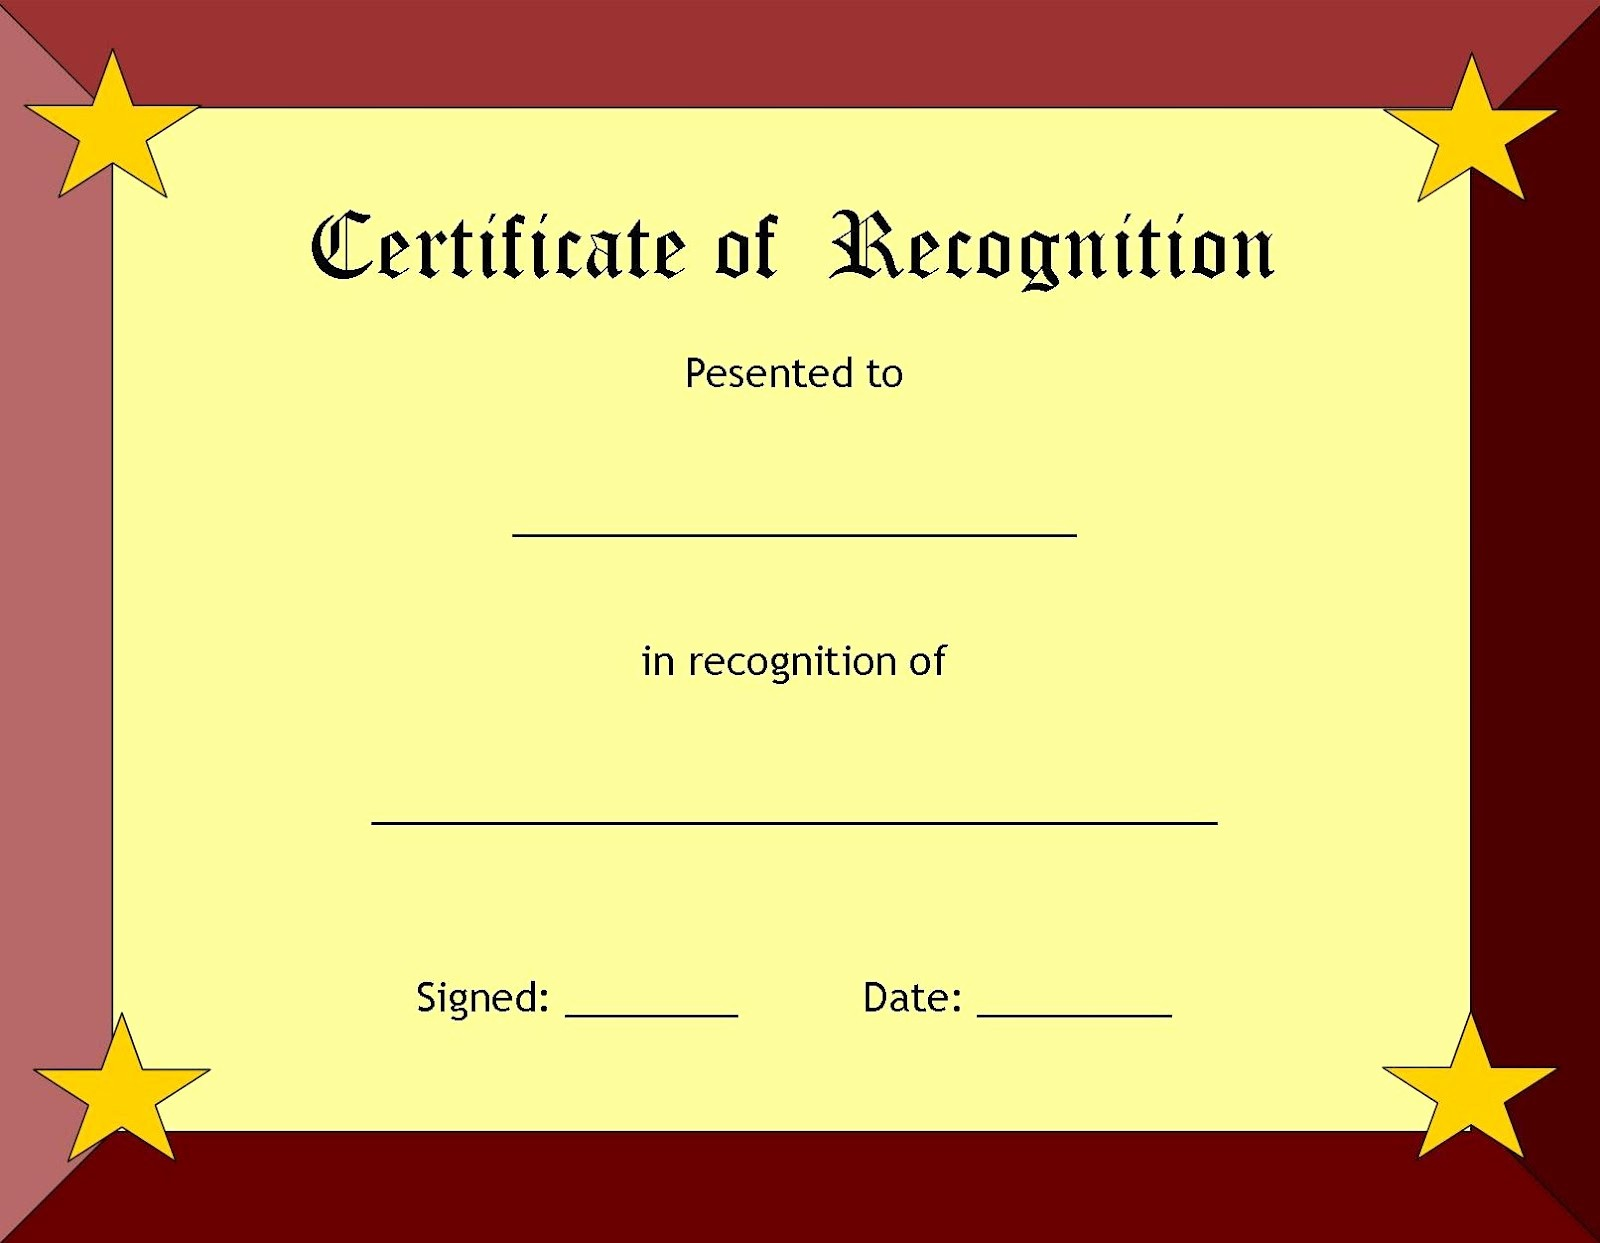 Recognition Certificate Templates Free Printable Lovely Blank Certificate Templates